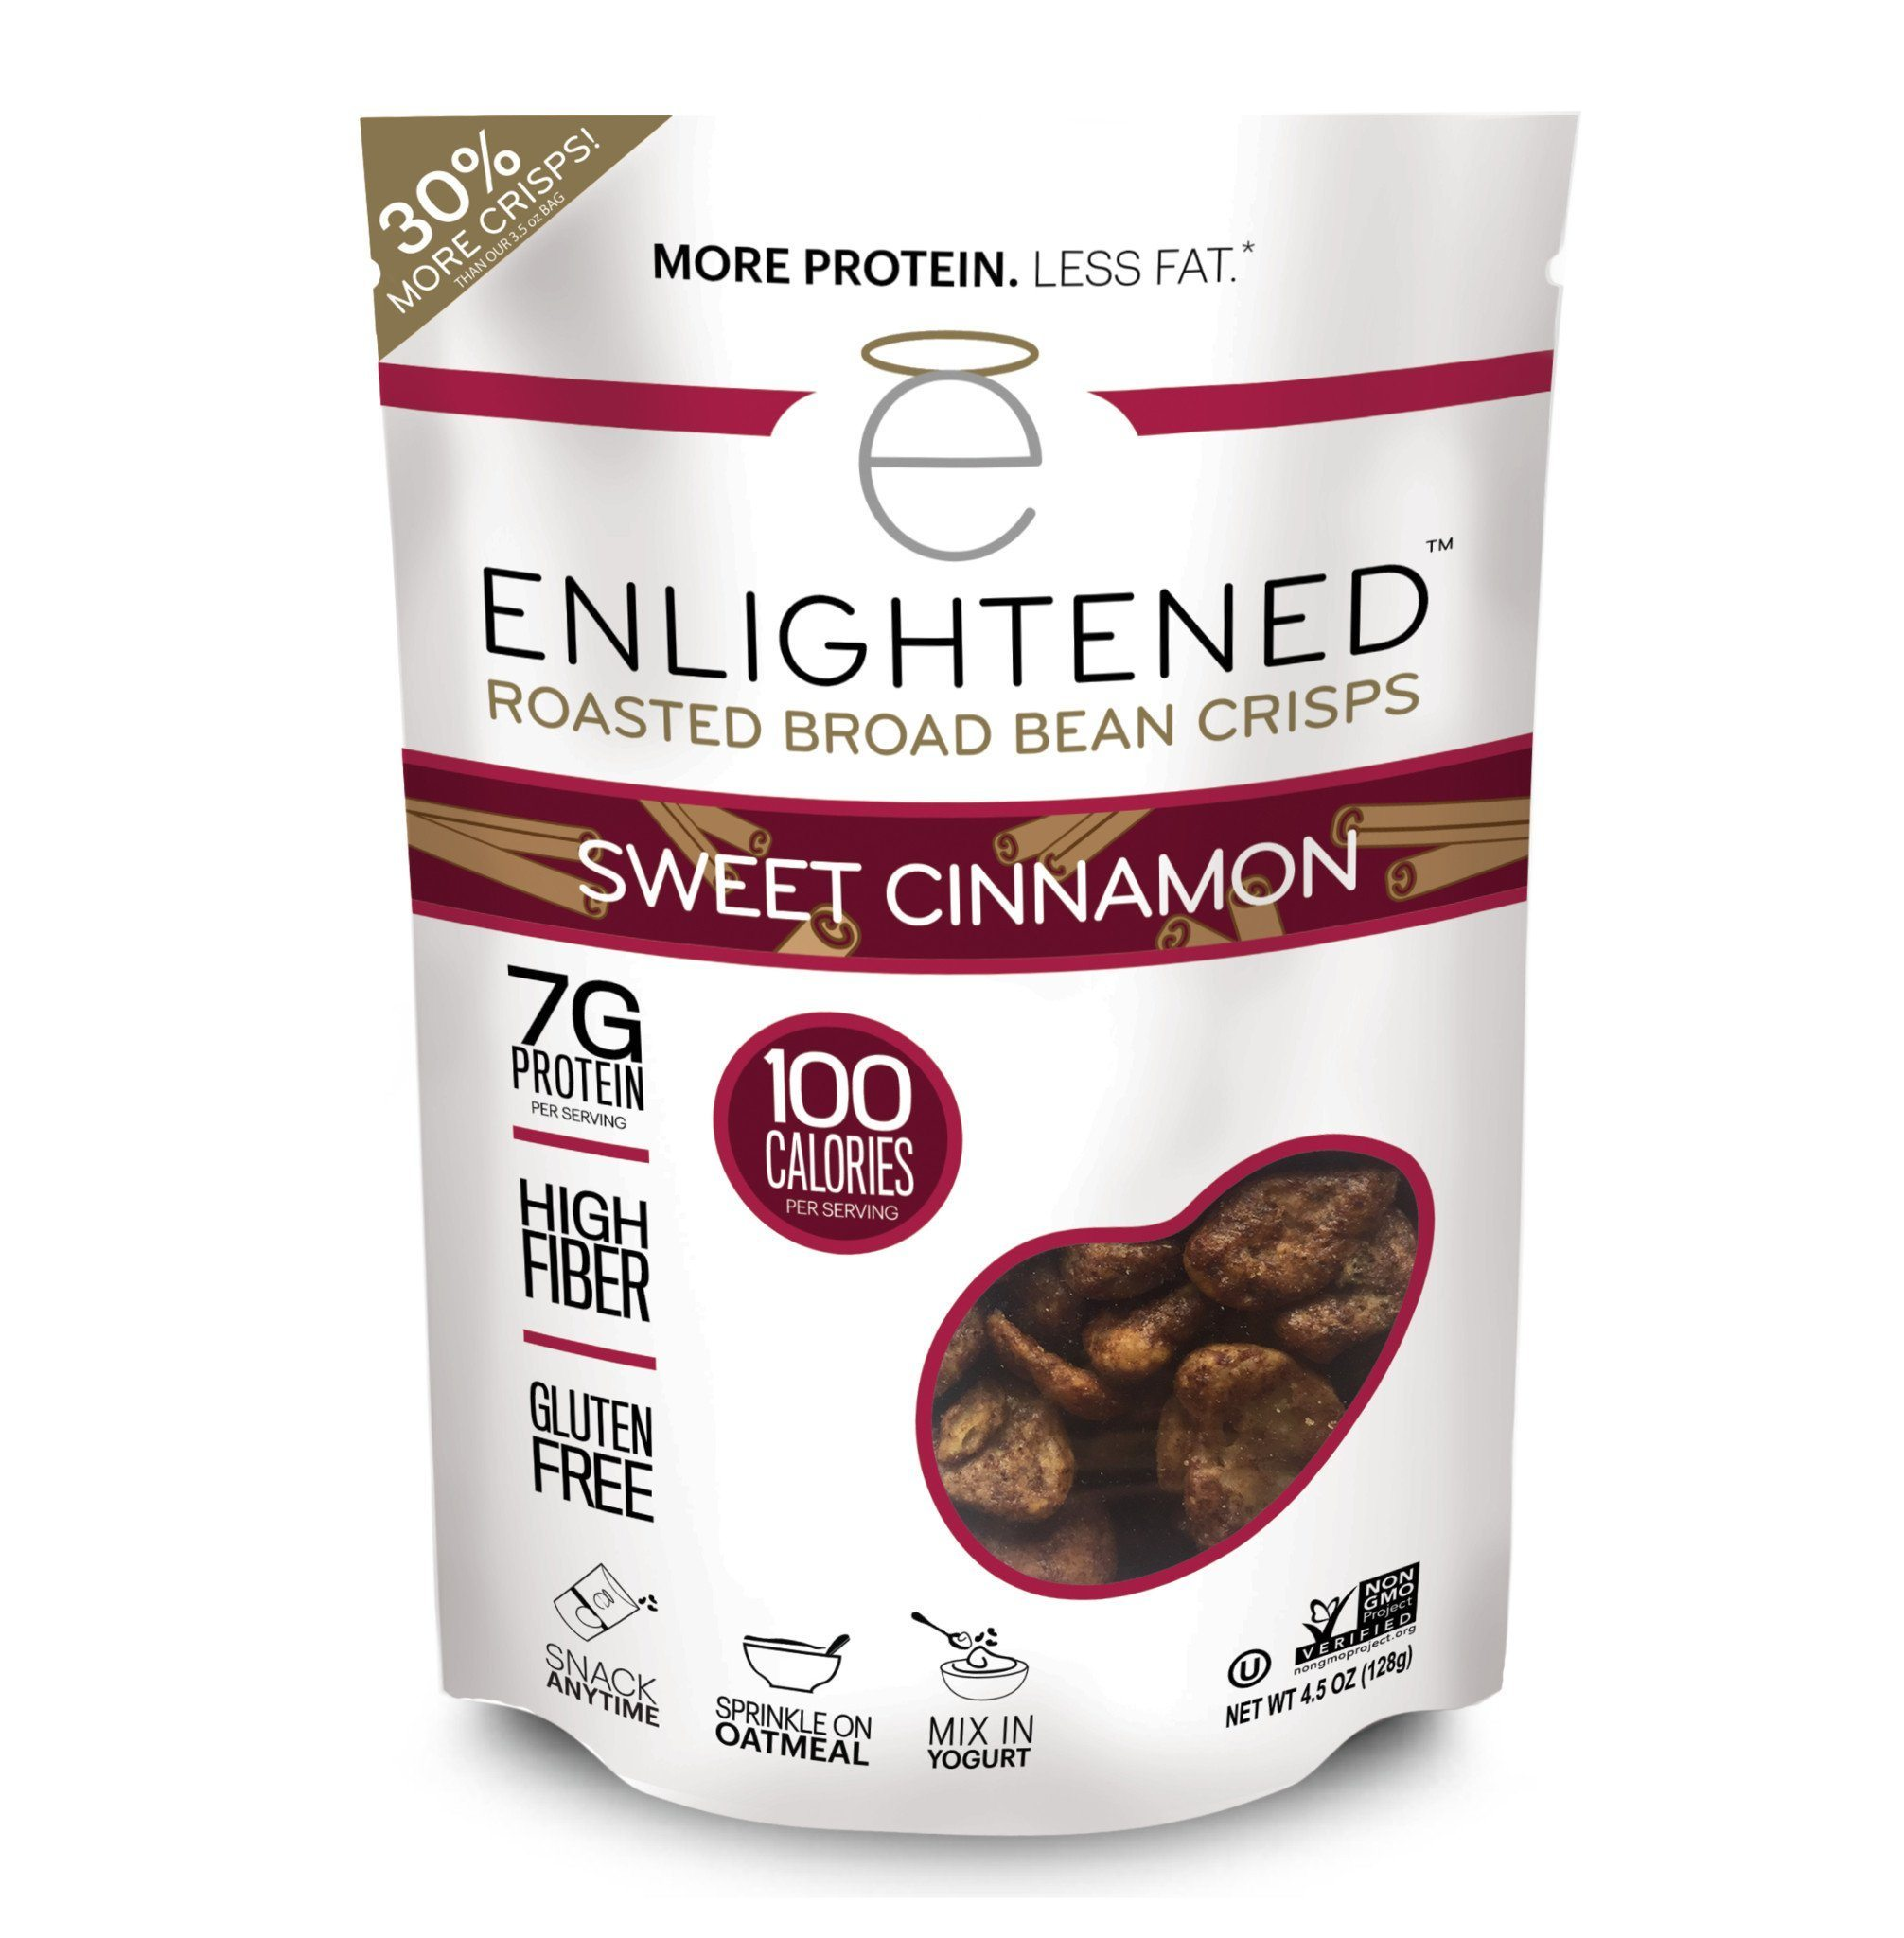 Enlightened Roasted Broad Bean Crisps - Sweet Cinnamon